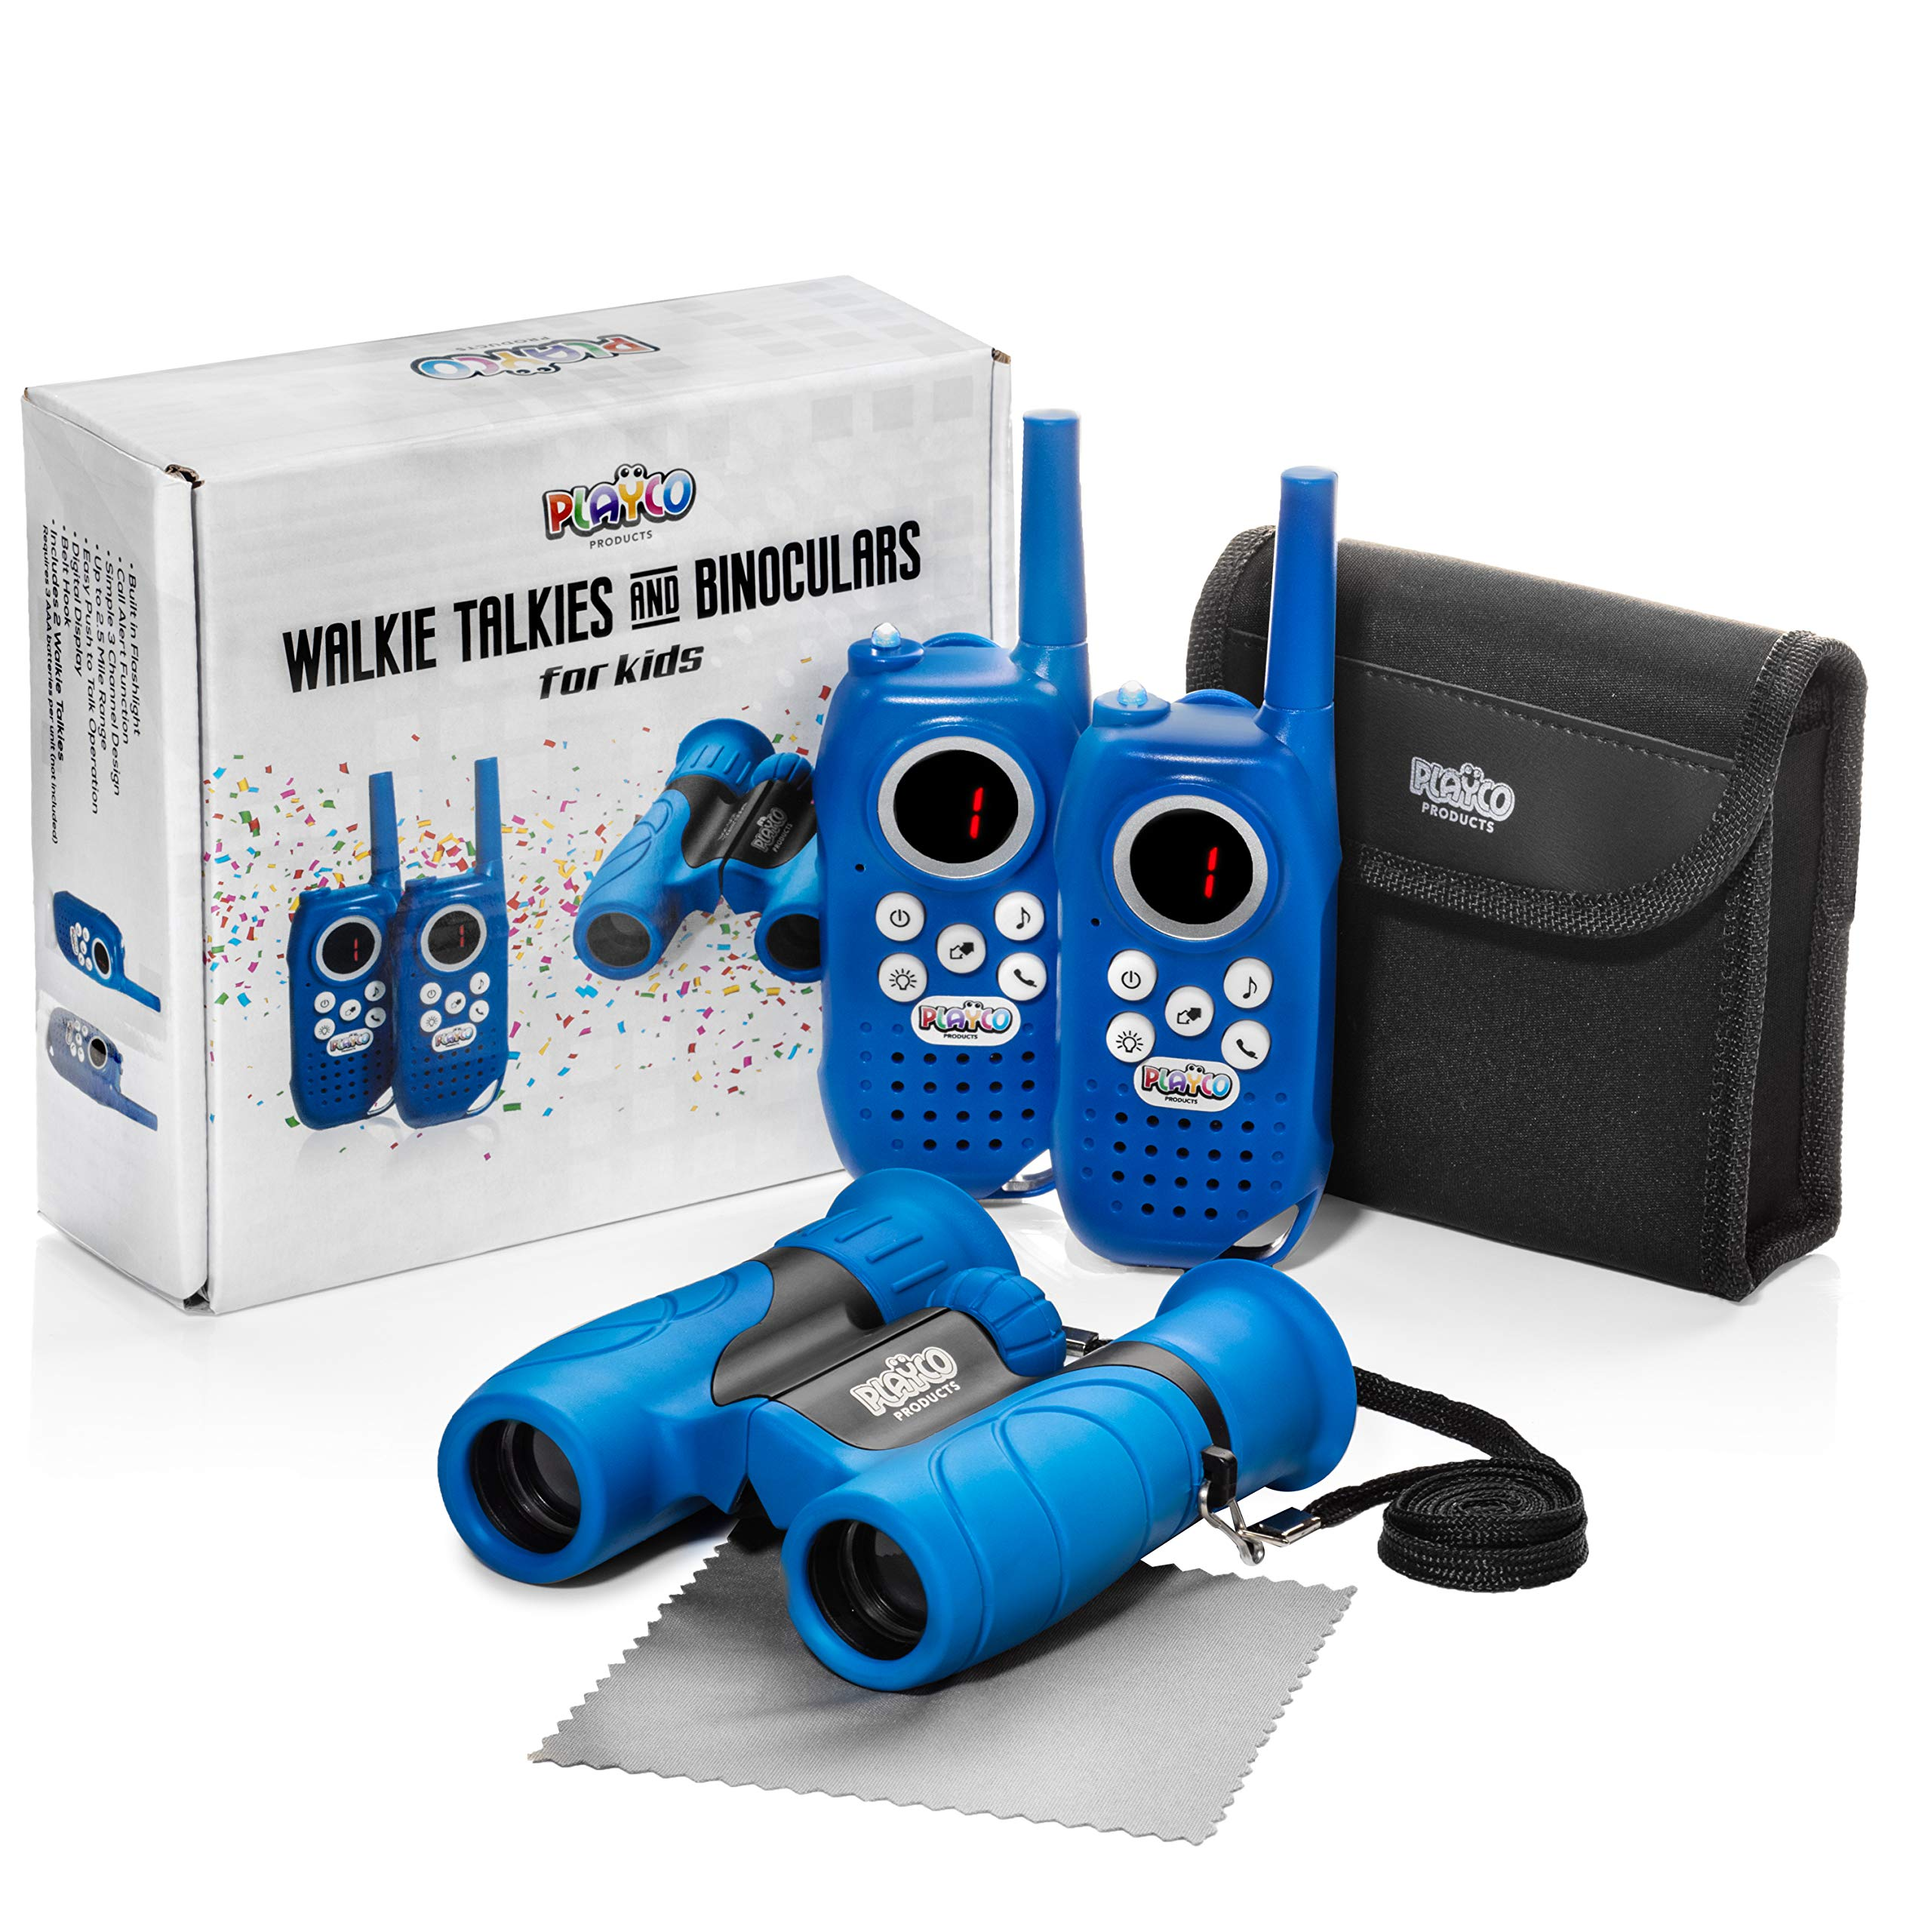 Playco Walkie Talkies and Binoculars for Kids - 2 Mile Range, Crystal Clear Sound, 8X21 Optical Lens by Playco (Image #7)